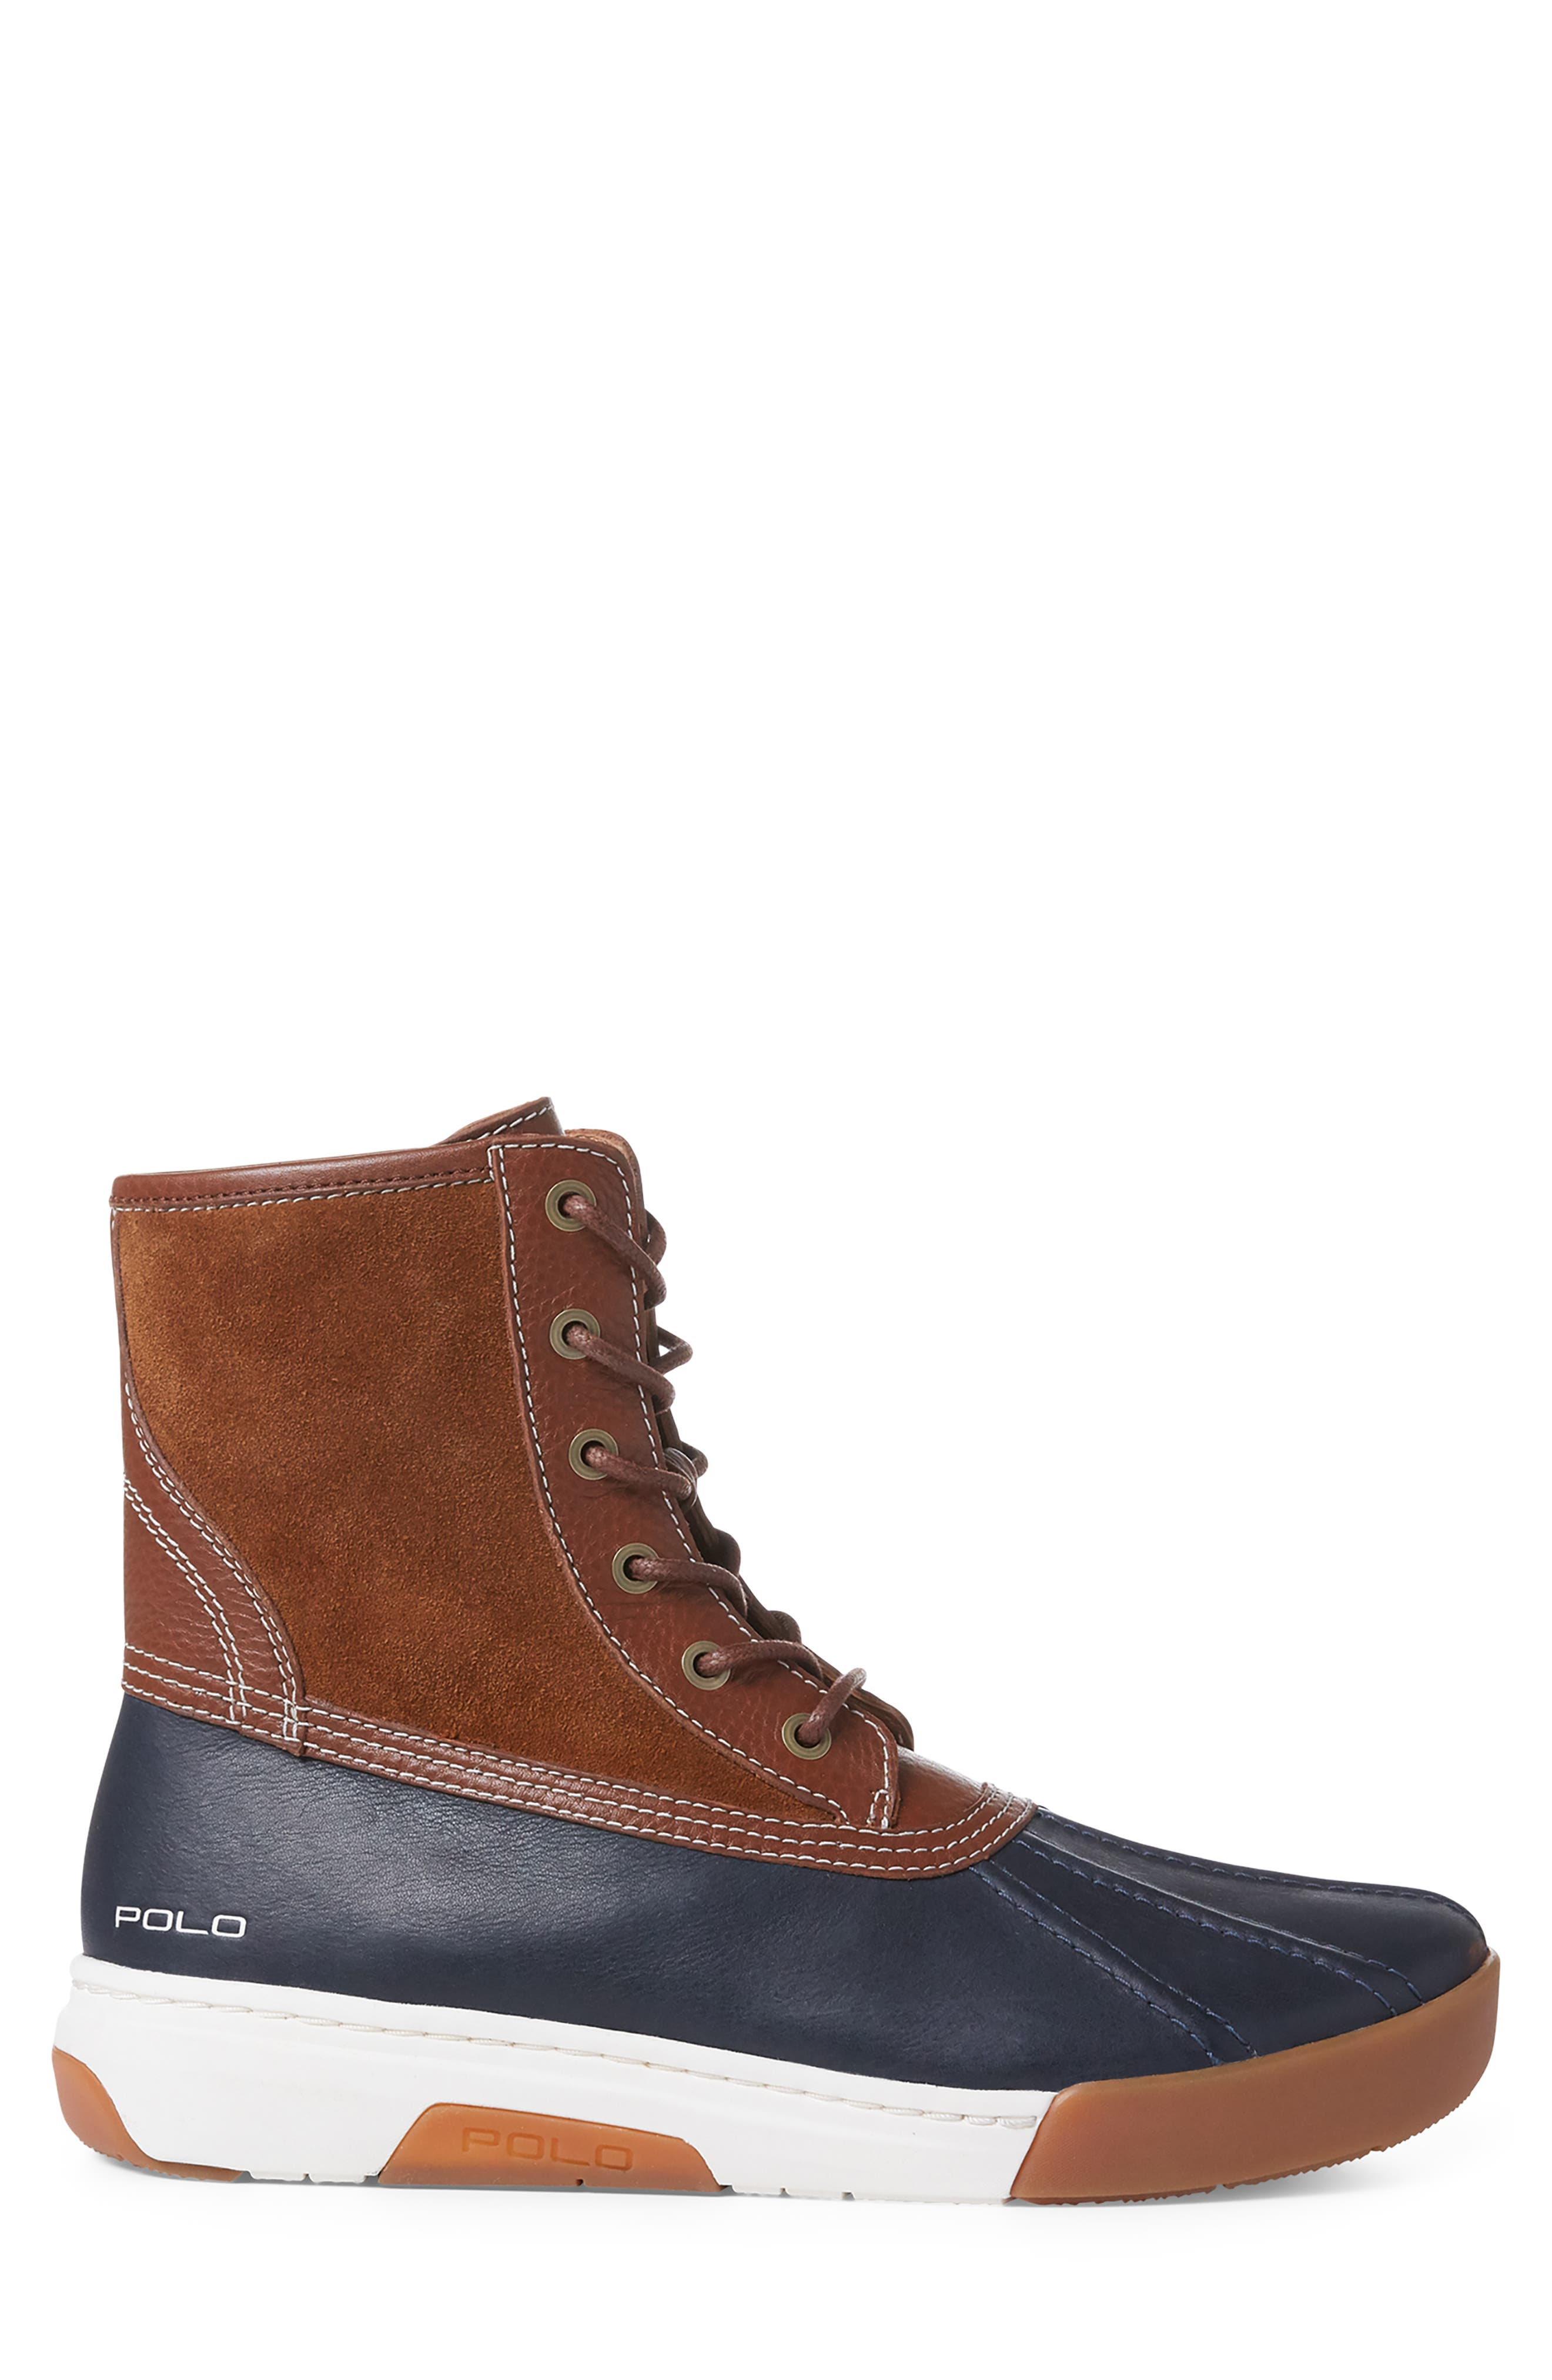 POLO RALPH LAUREN, Declan Water Repellent Duck Boot, Alternate thumbnail 2, color, SNUFF/ NAVY LEATHER